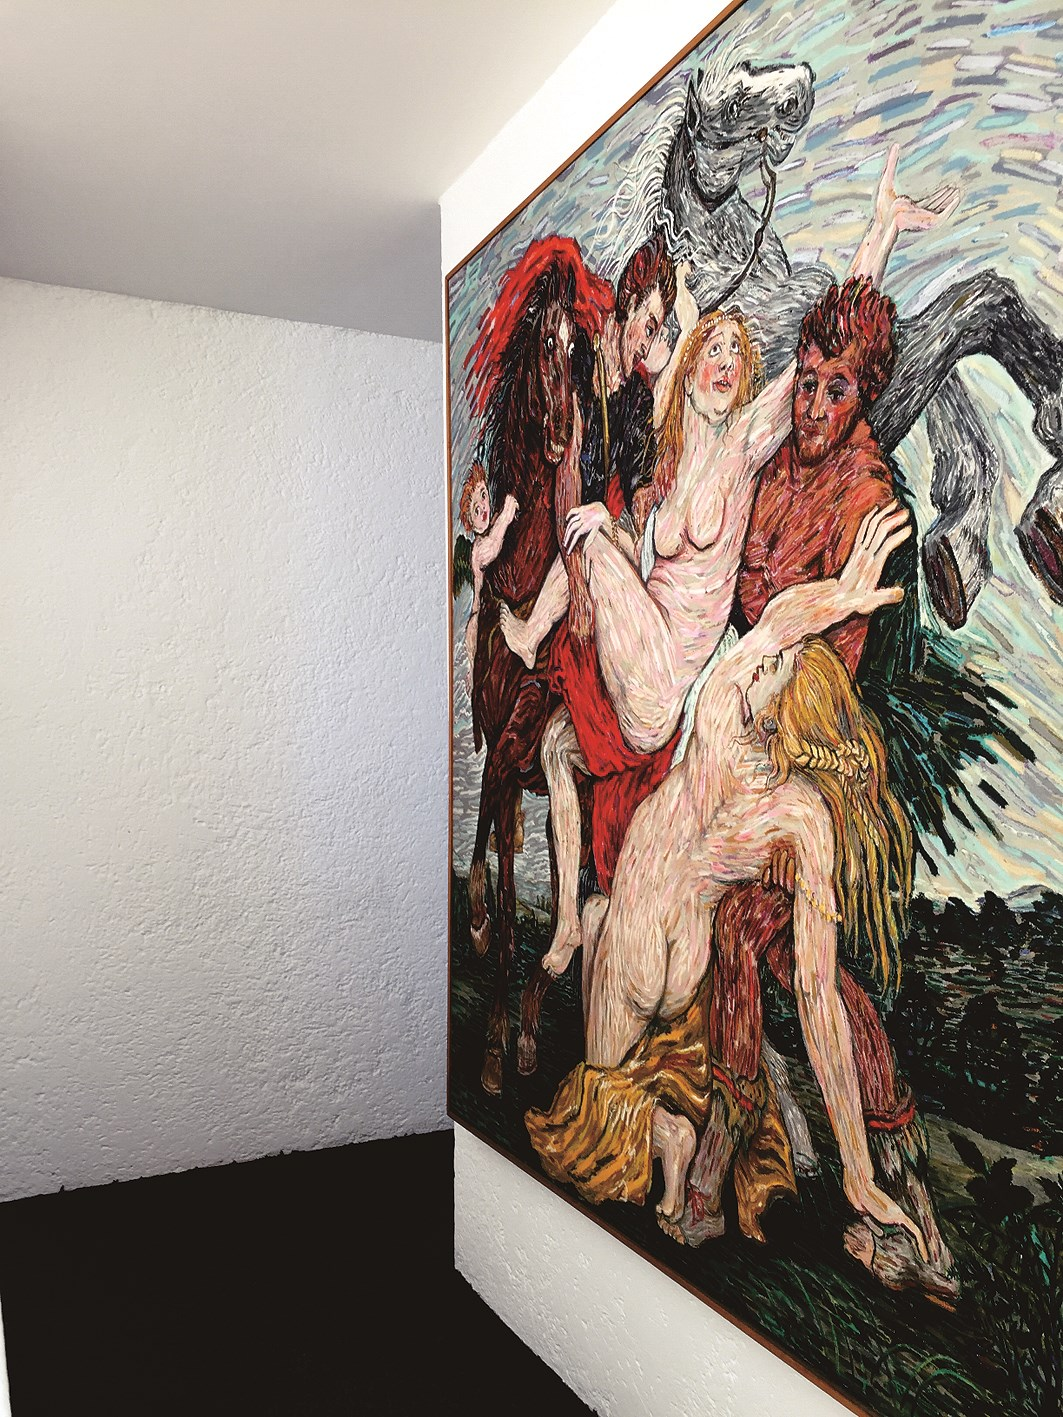 This bold painting by Mexican artist is on display at the second level of the house.